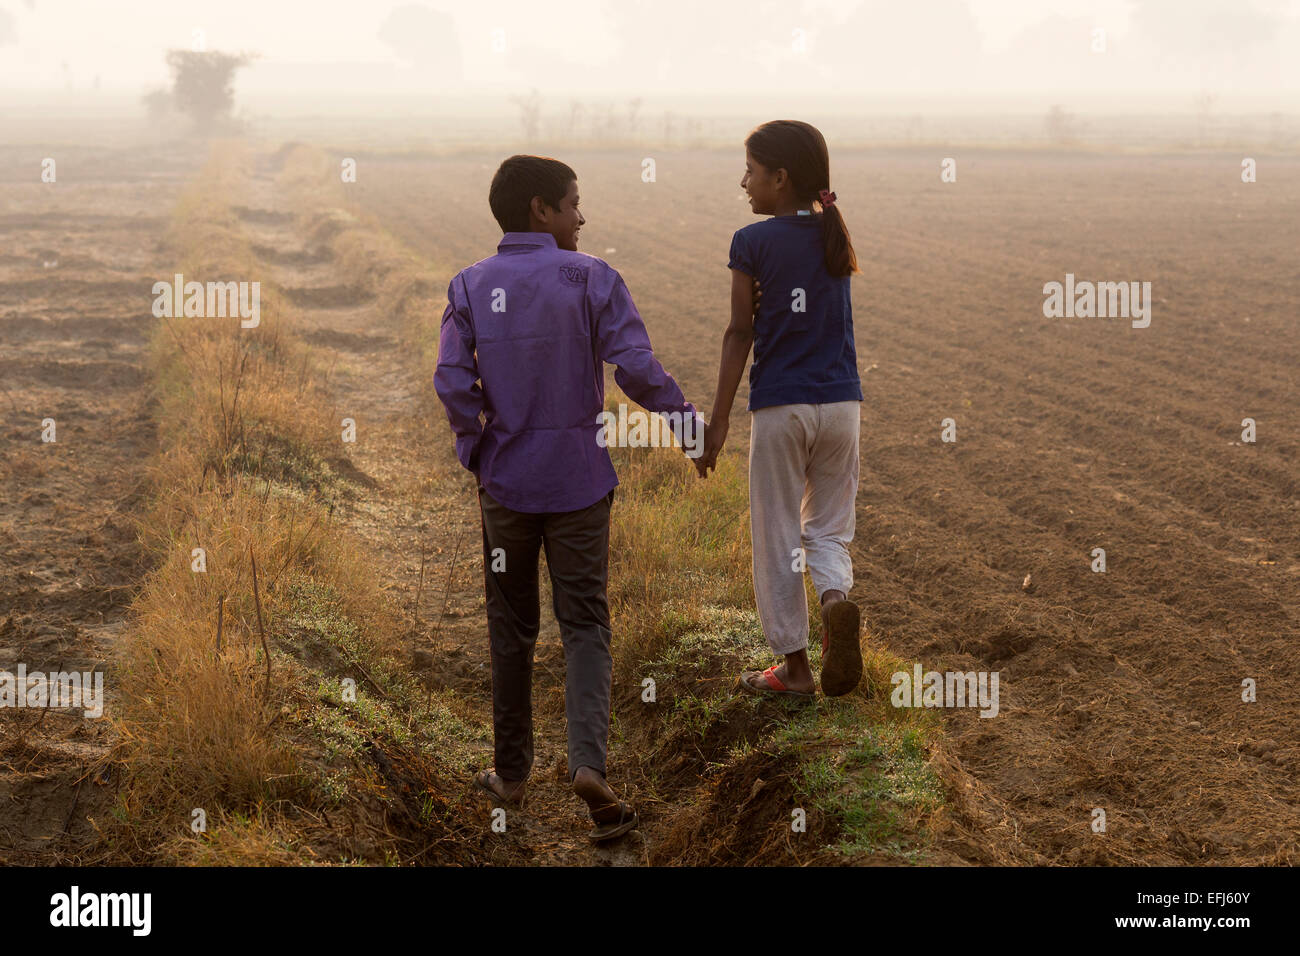 Brother Sister India Stock Photos & Brother Sister India Stock